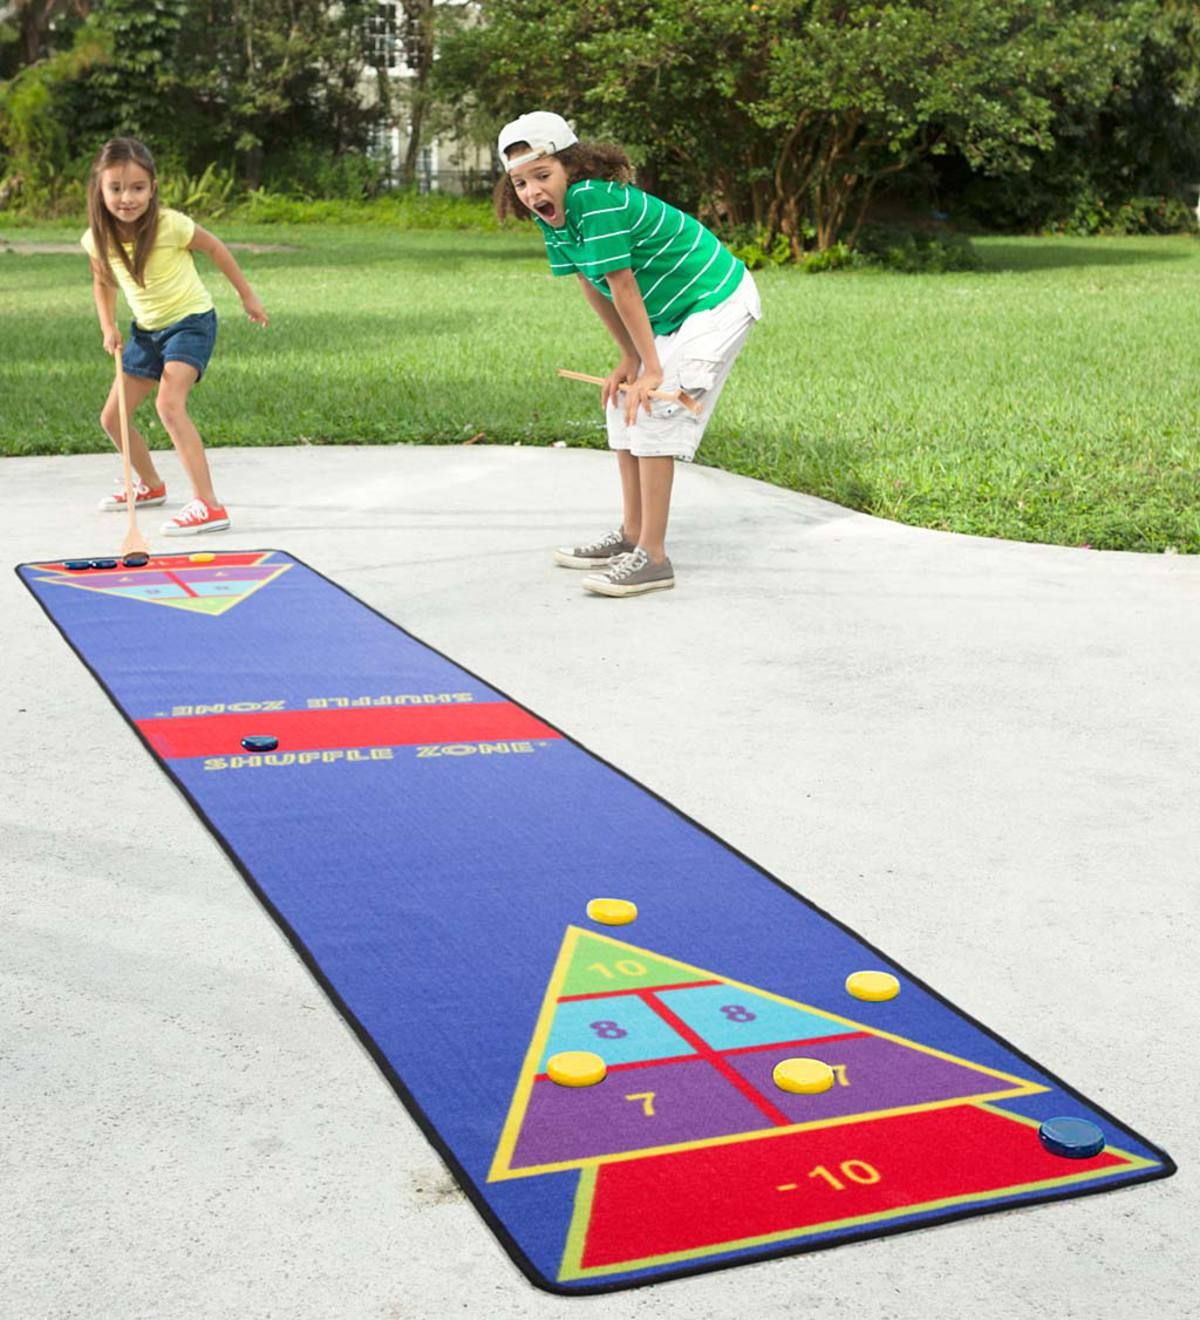 Families Can Enjoy A Classic Game Of Shuffleboard On Our Colorful Shuffle Zone Game Carpet Features A Non Ski Shuffleboard Outdoor Games For Kids Family Games